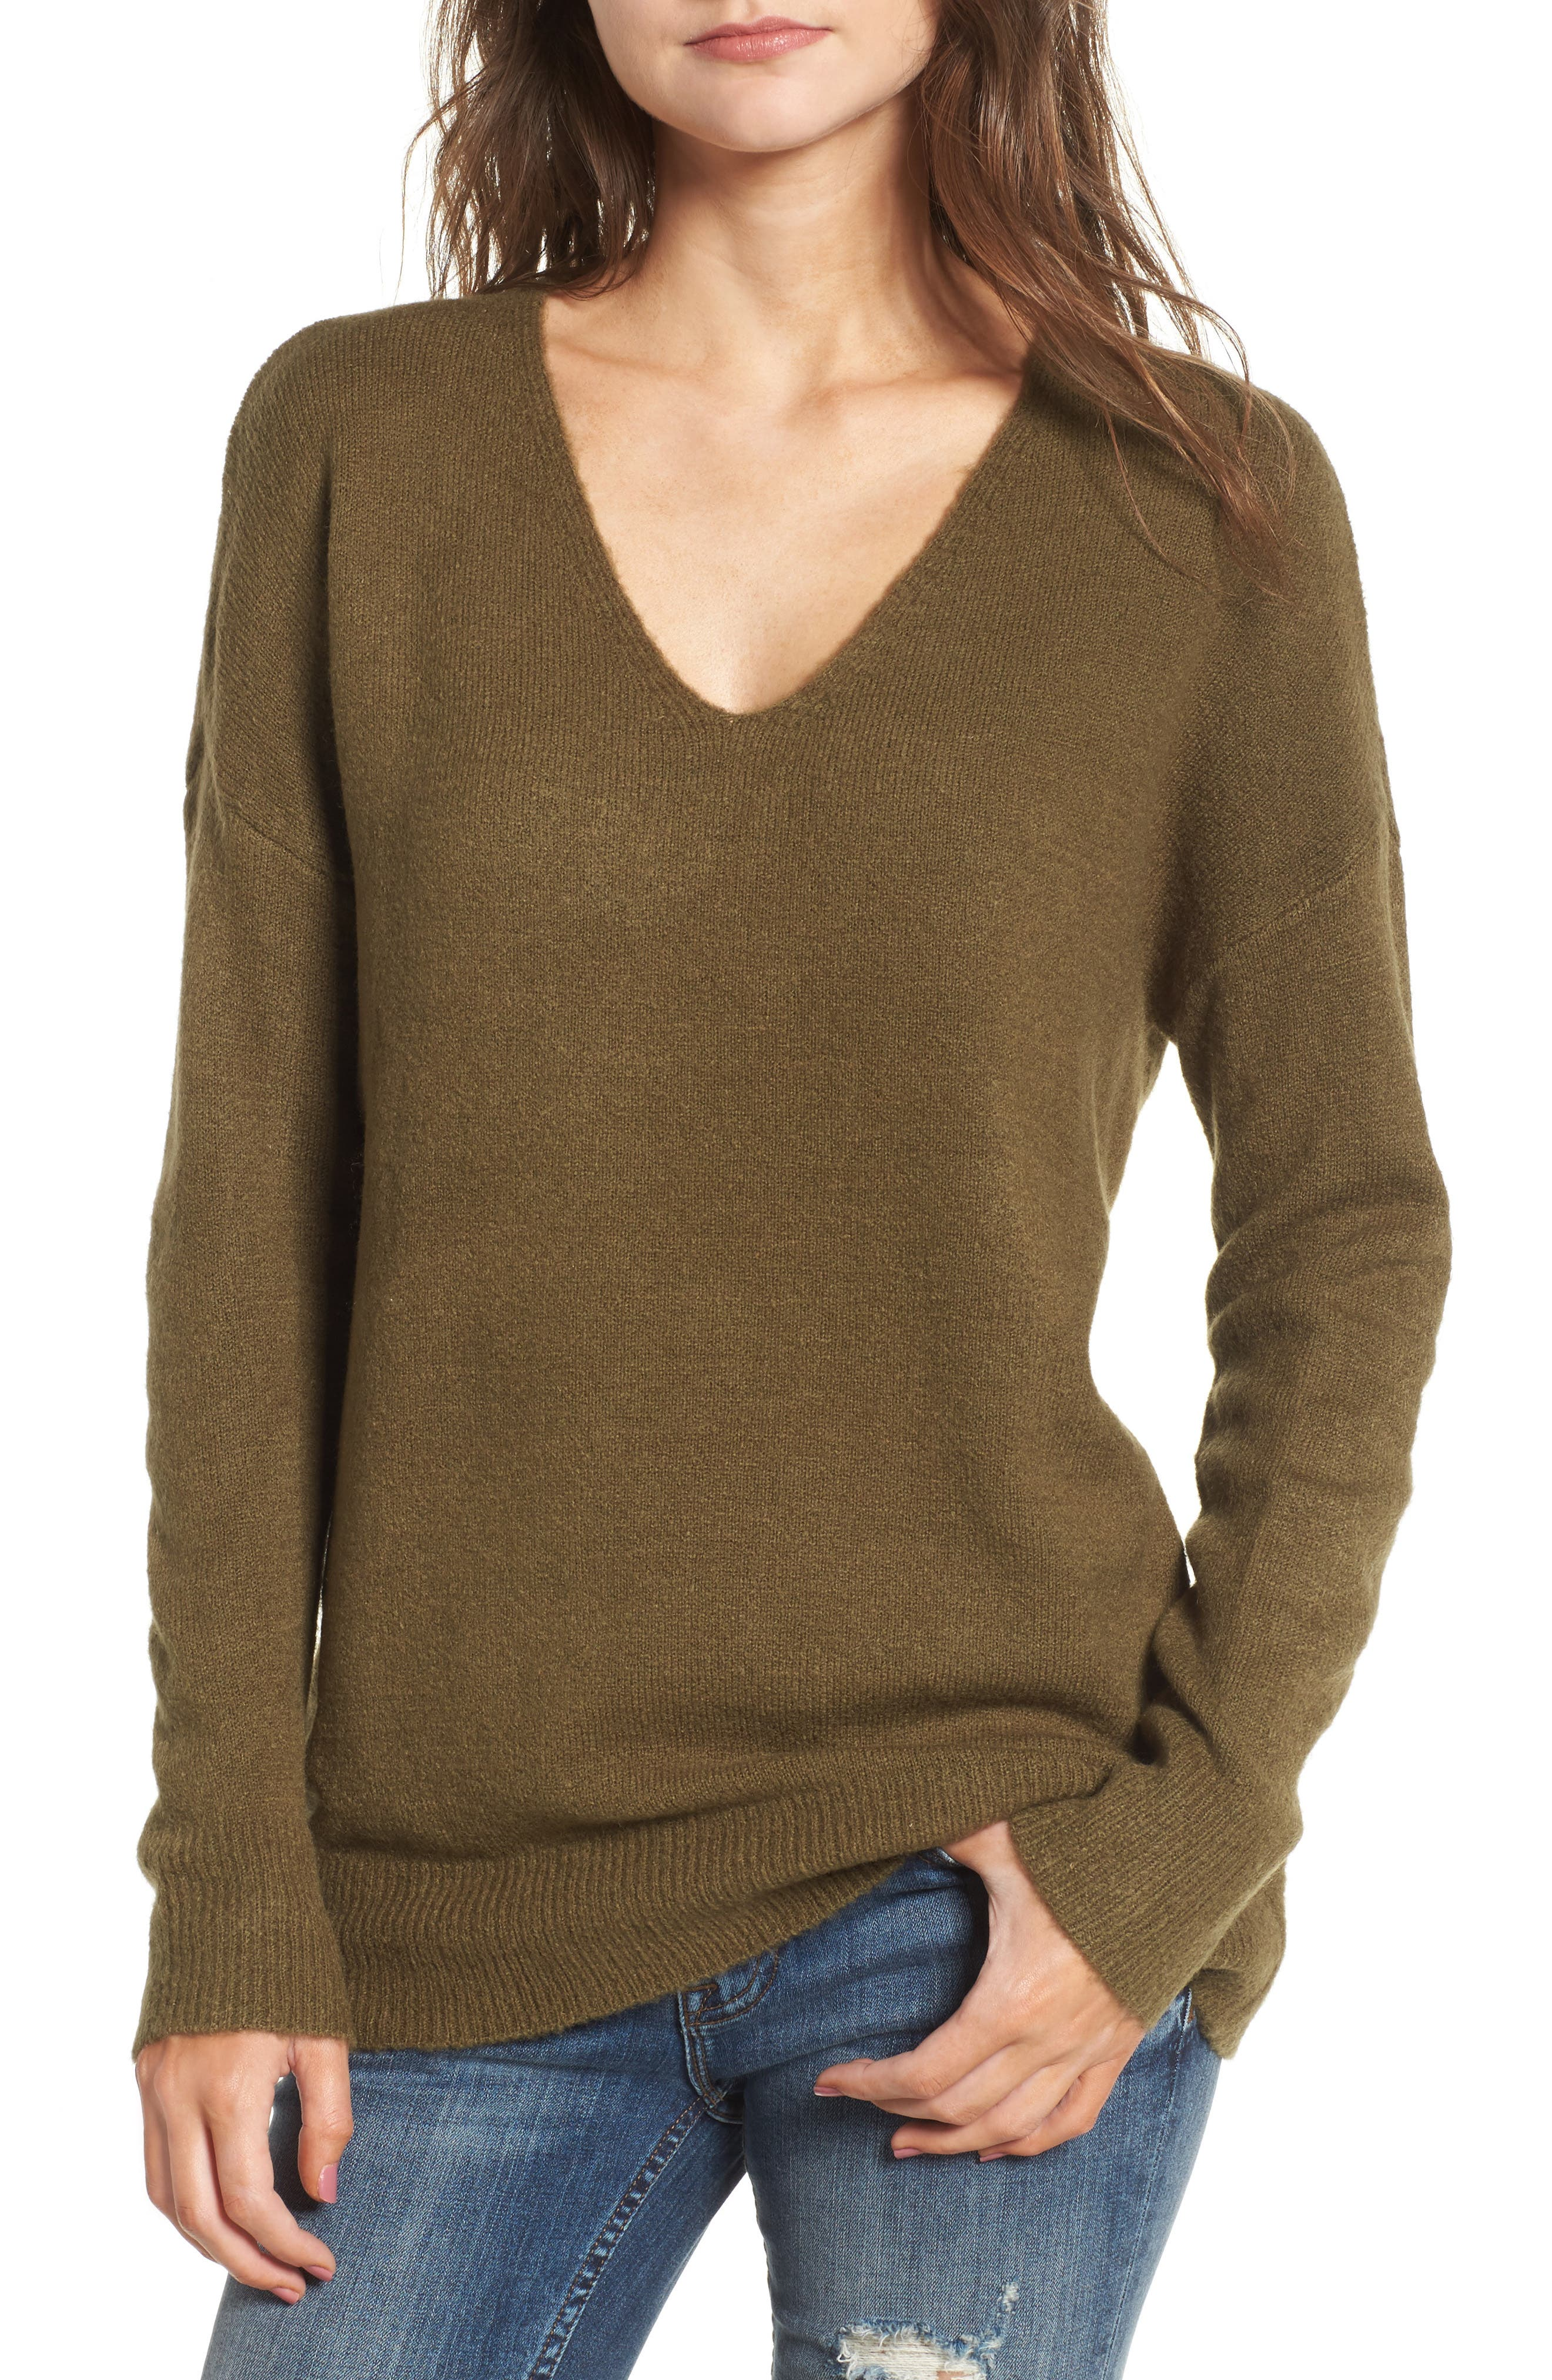 DREAMERS BY DEBUT V-Neck Sweater, Main, color, 310